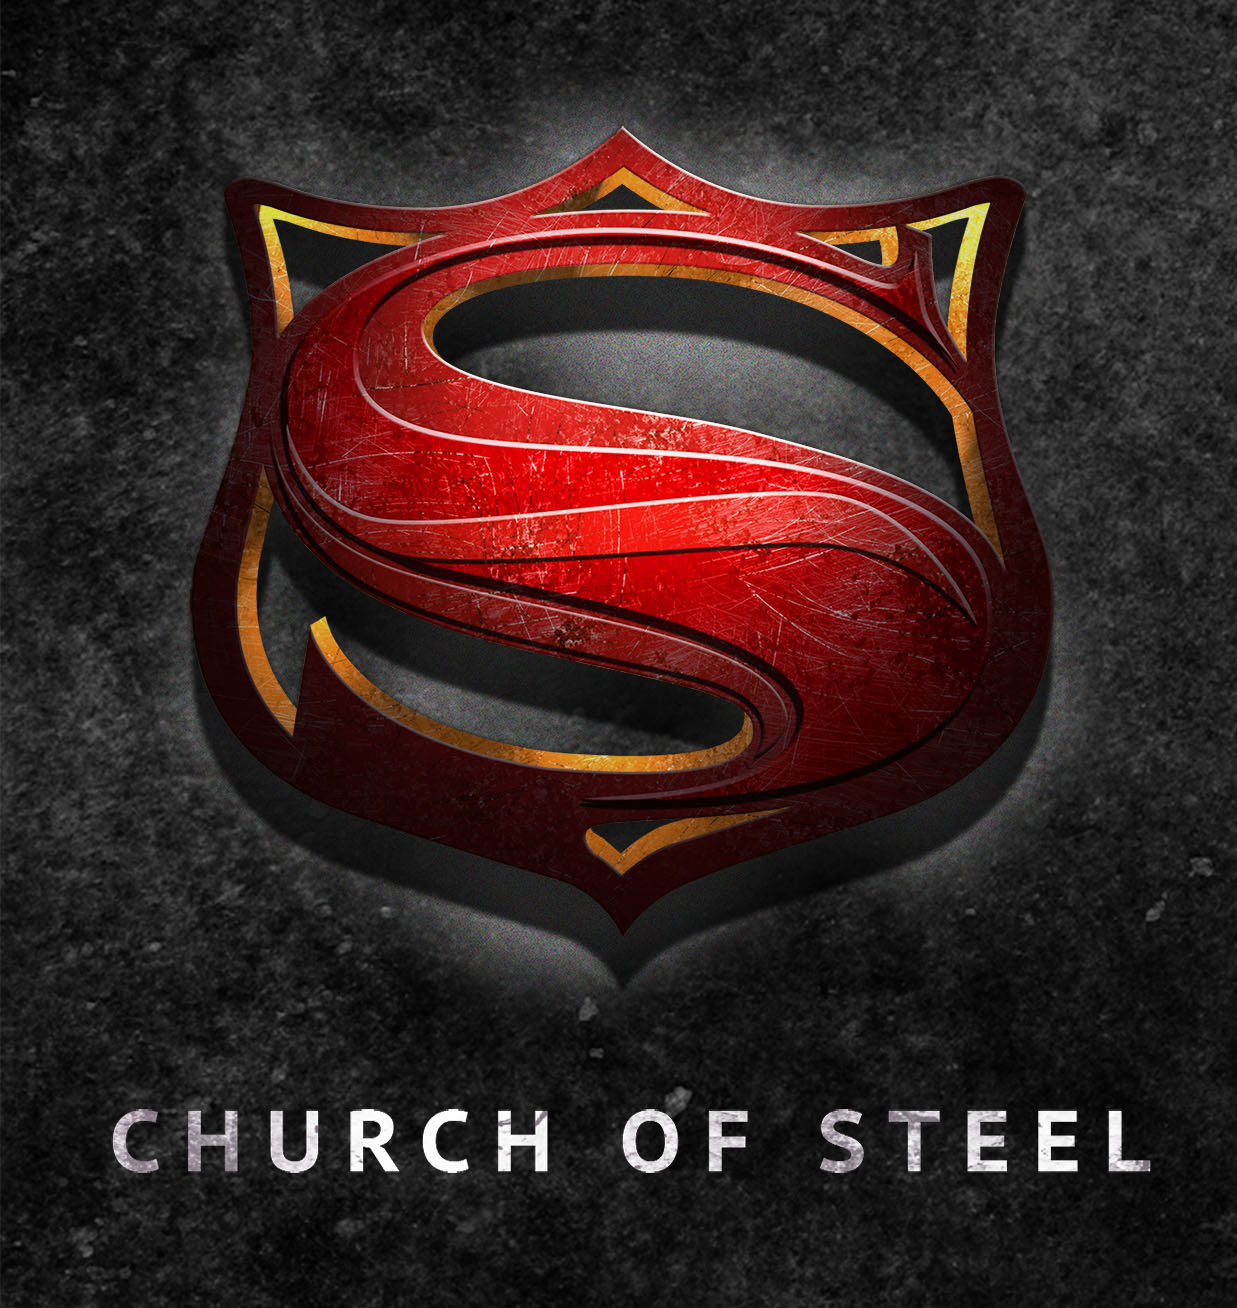 church of steel image